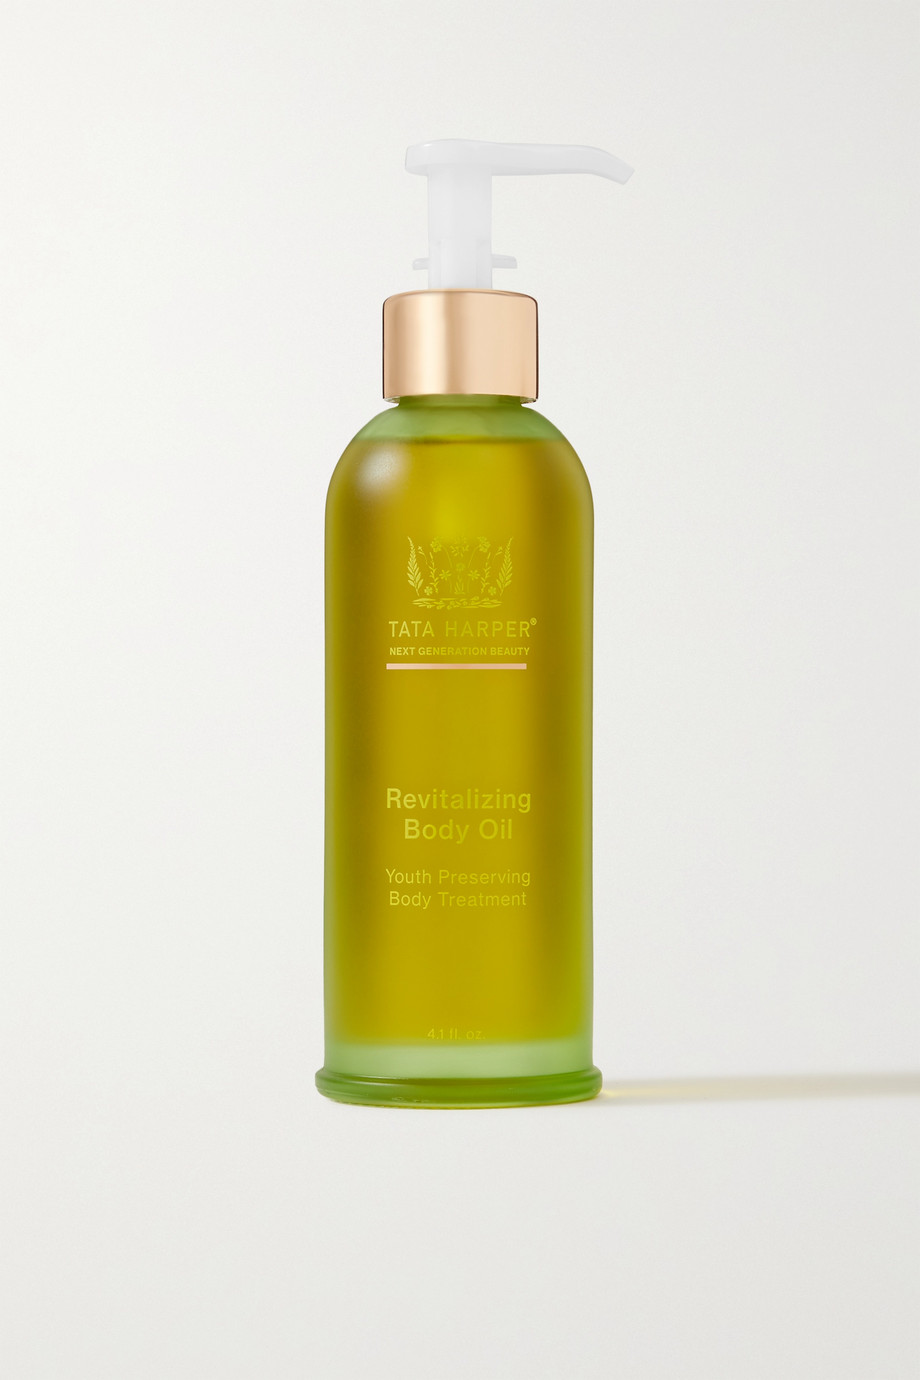 TATA HARPER + NET SUSTAIN Revitalizing Body Oil, 125ml